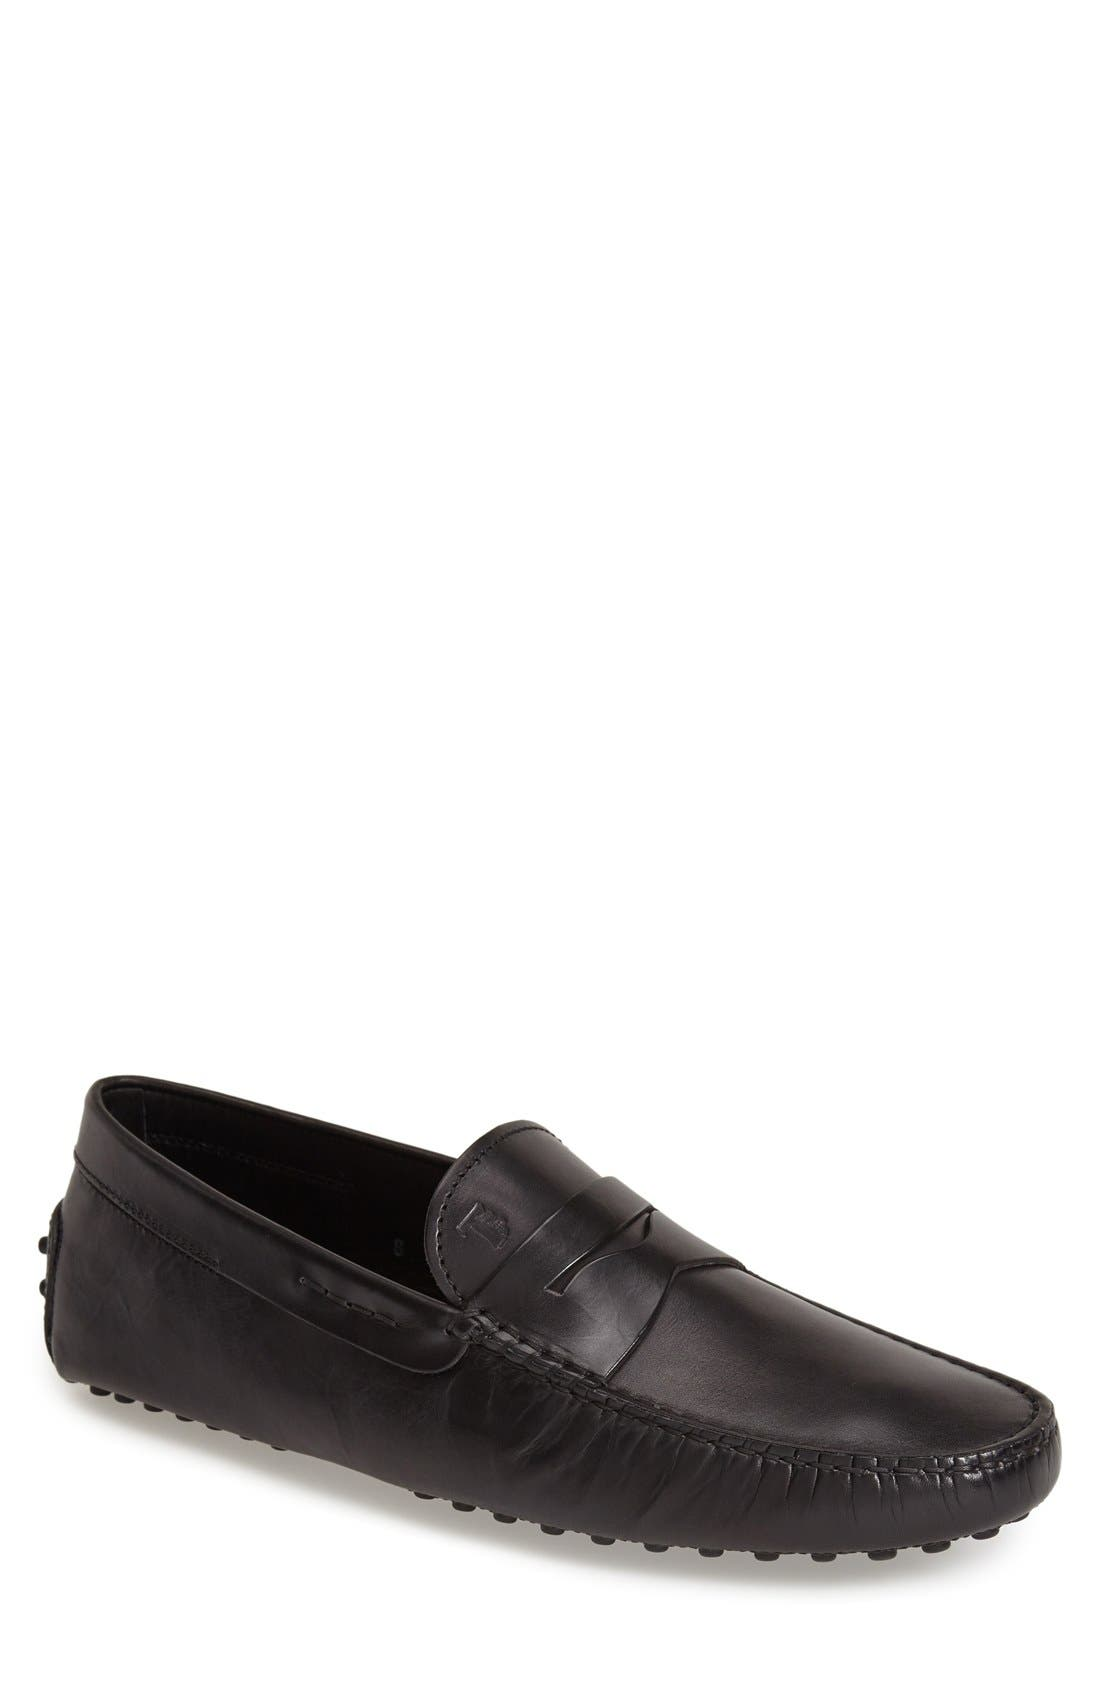 Alternate Image 1 Selected - Tod's 'Gommini' Penny Driving Moccasin